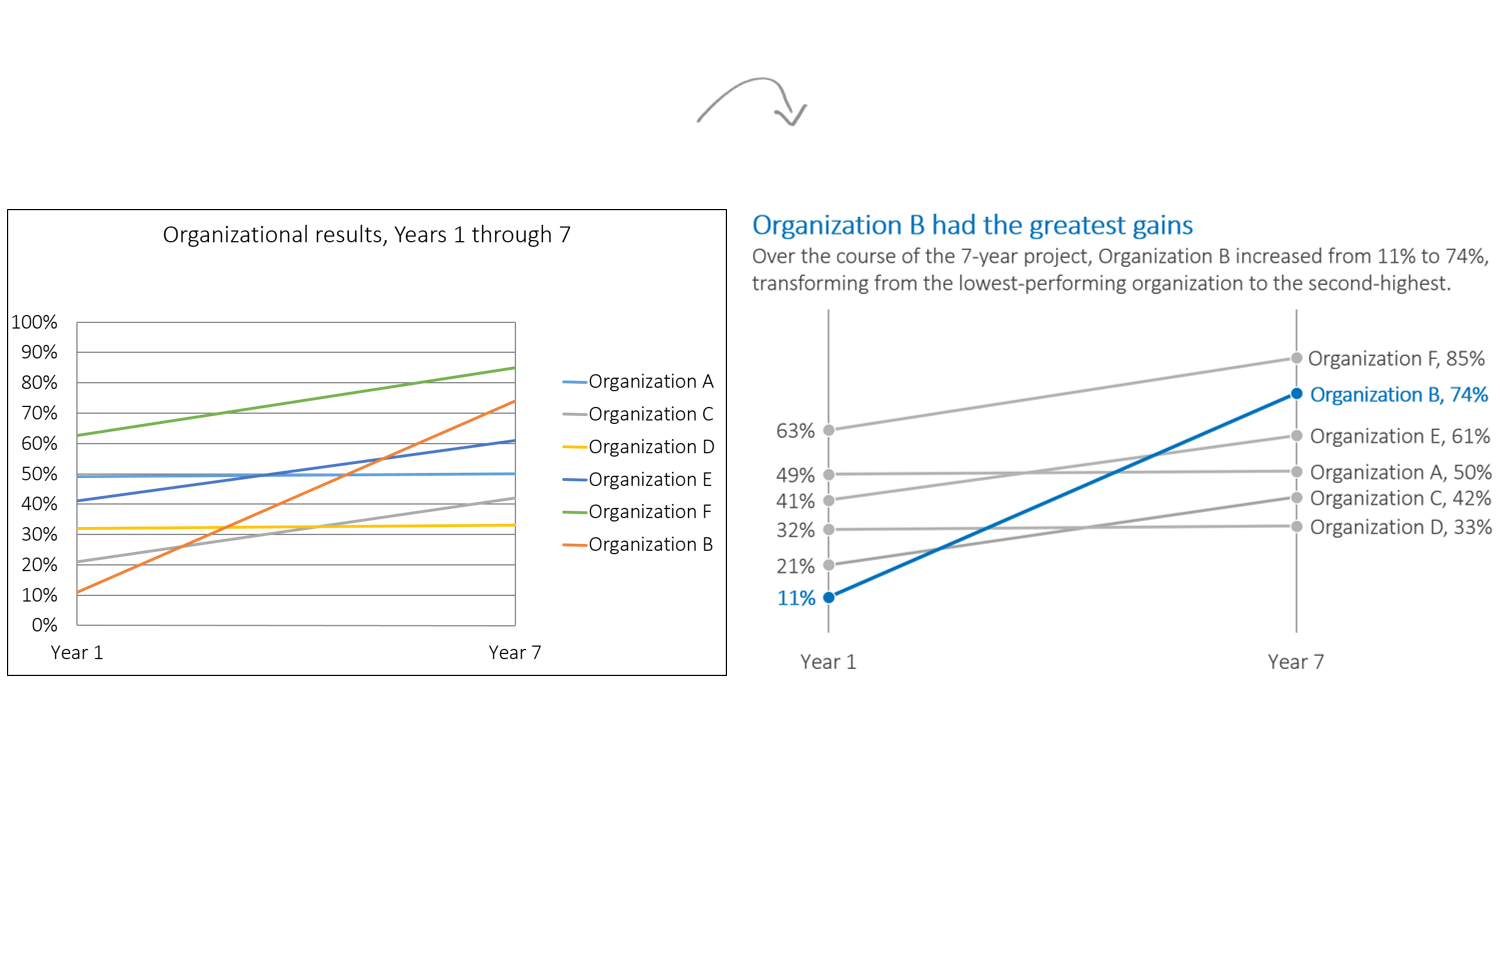 The Simplification & Emphasis Approach to Editing Graphs